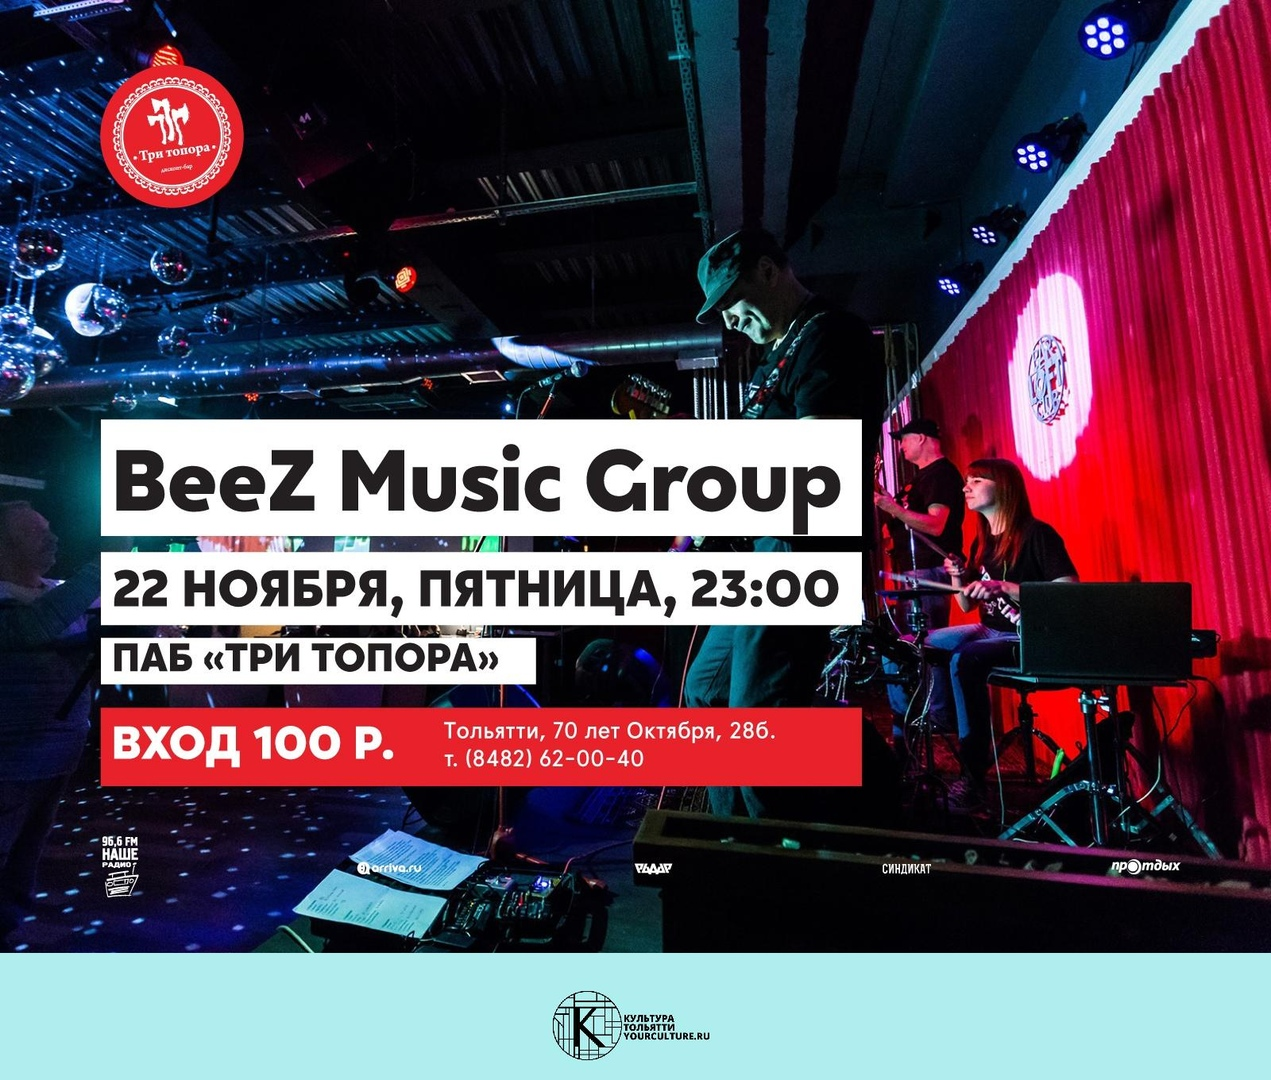 BeeZ Music Group в Топорах